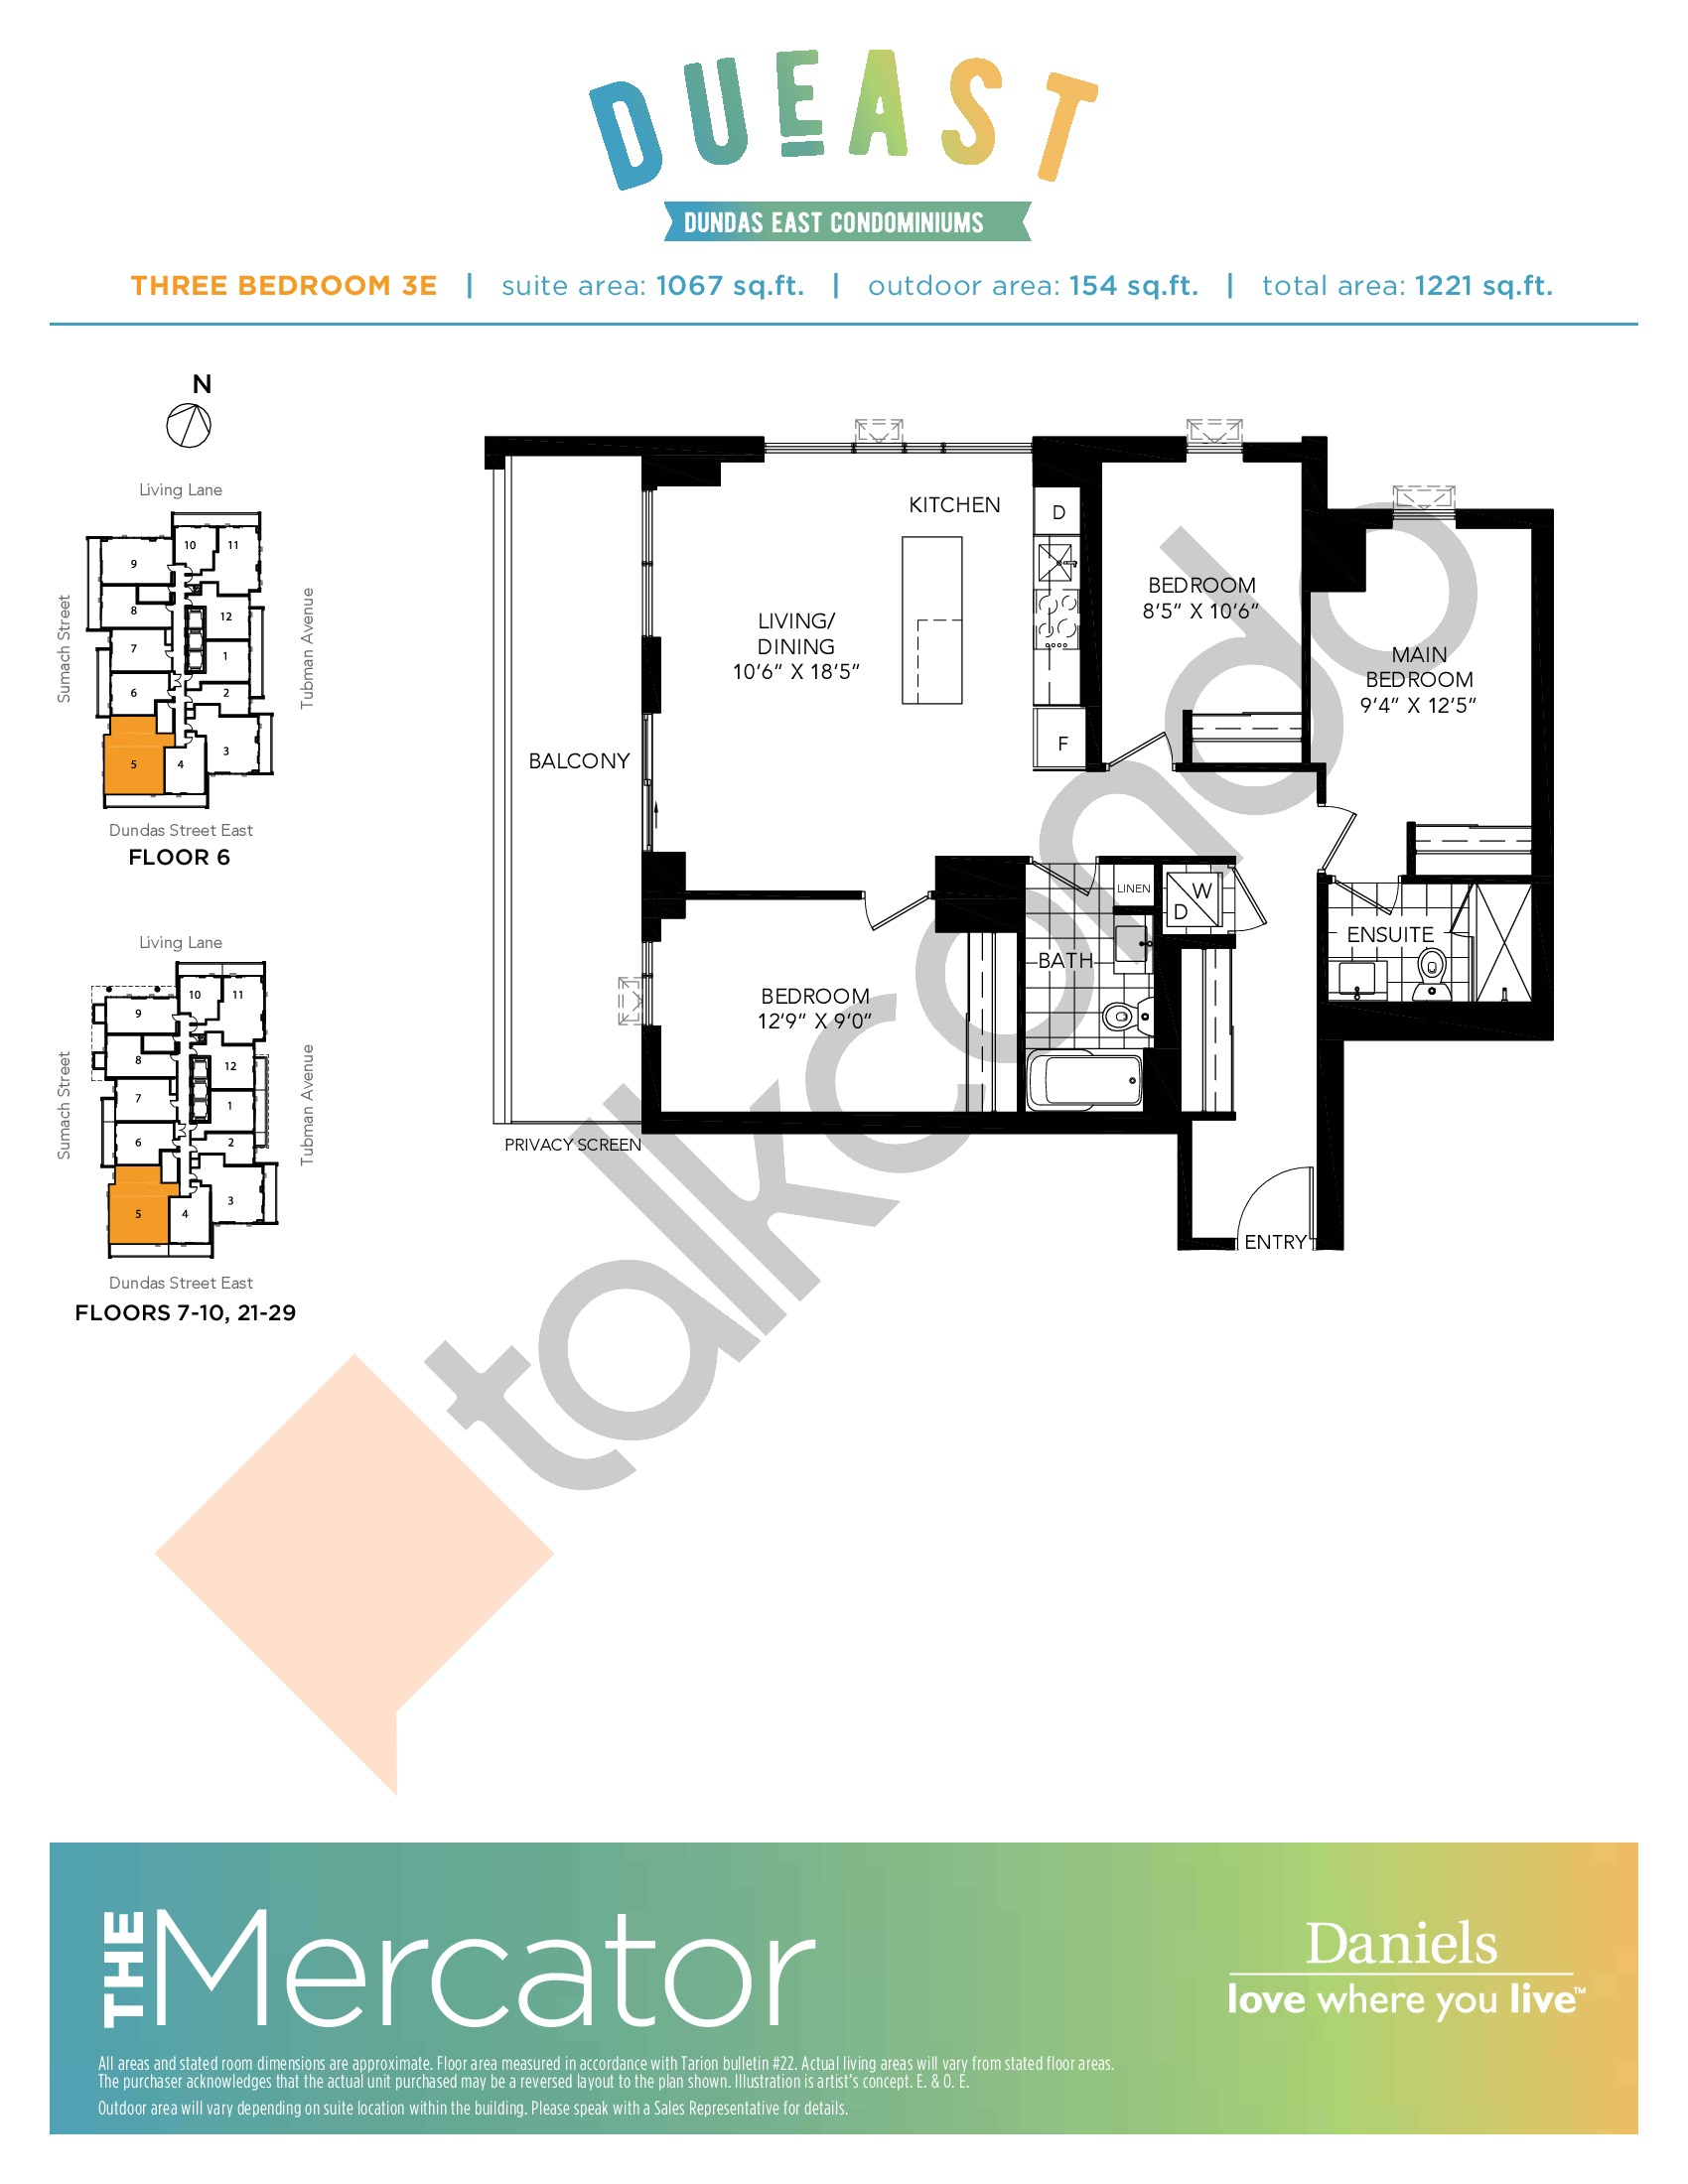 The Mercator (3E) Floor Plan at DuEast Condos - 1067 sq.ft